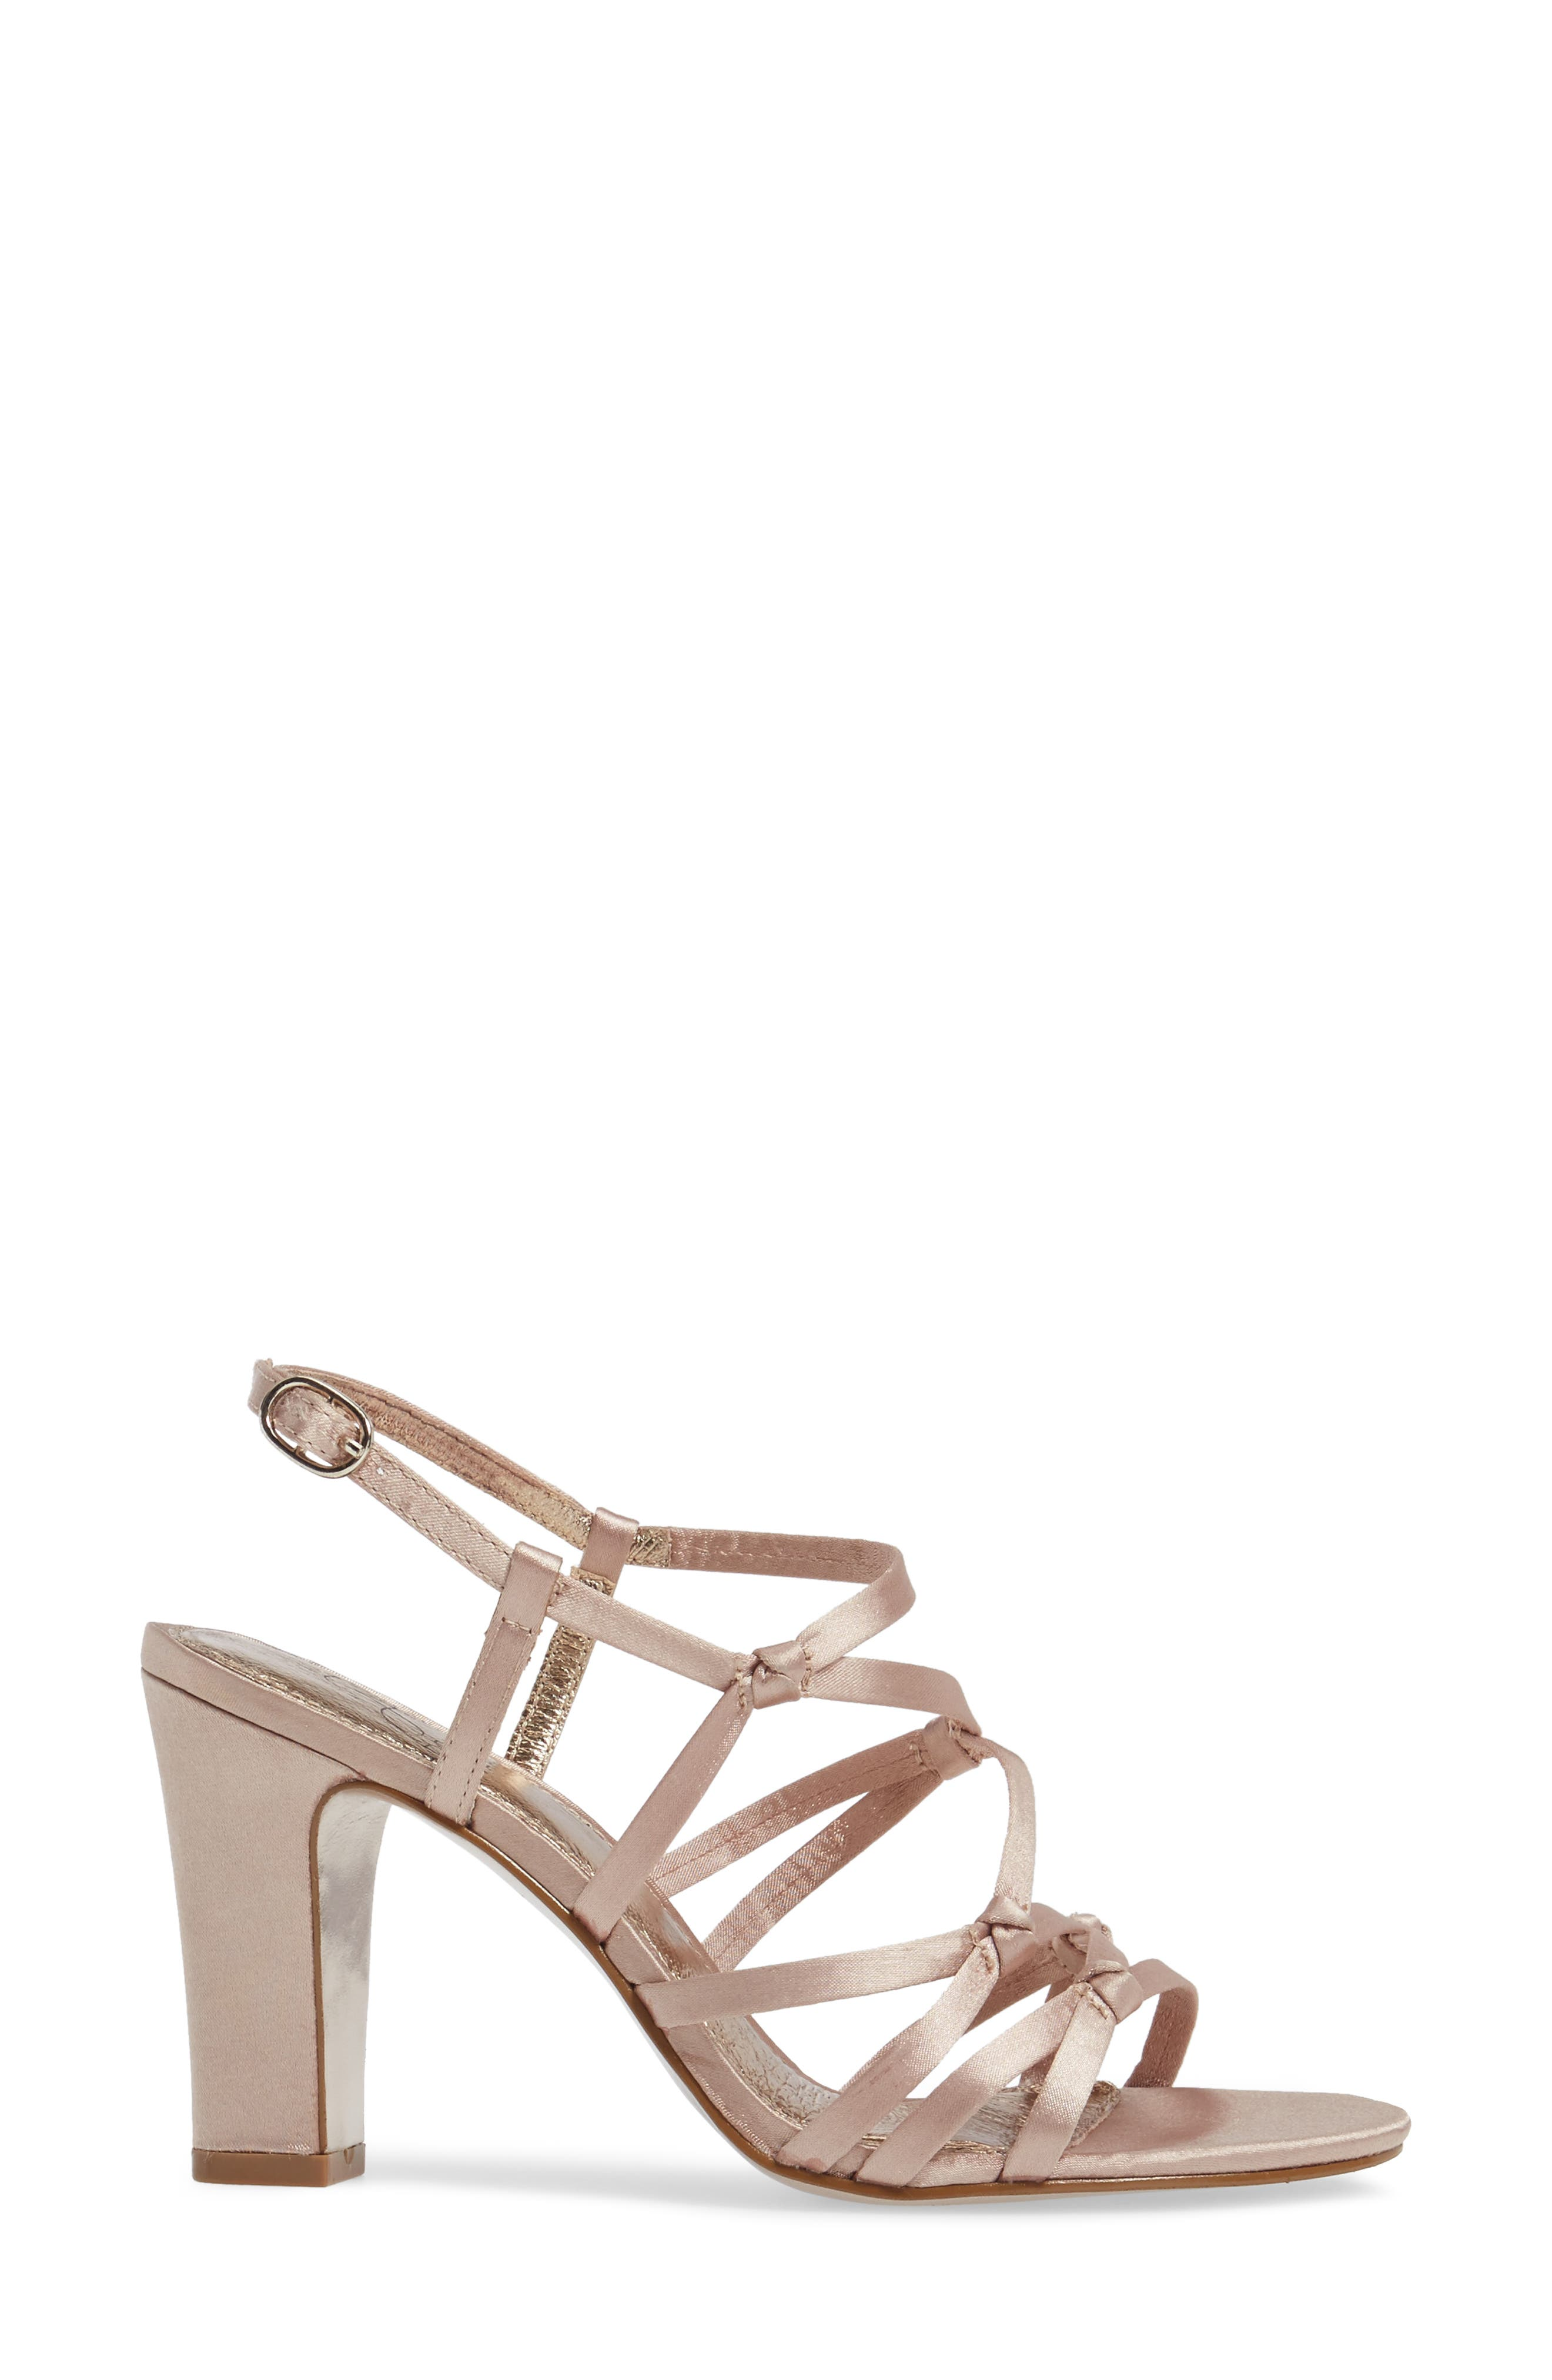 Alternate Image 3  - Adrianna Papell Adelson Knotted Strappy Sandal (Women)